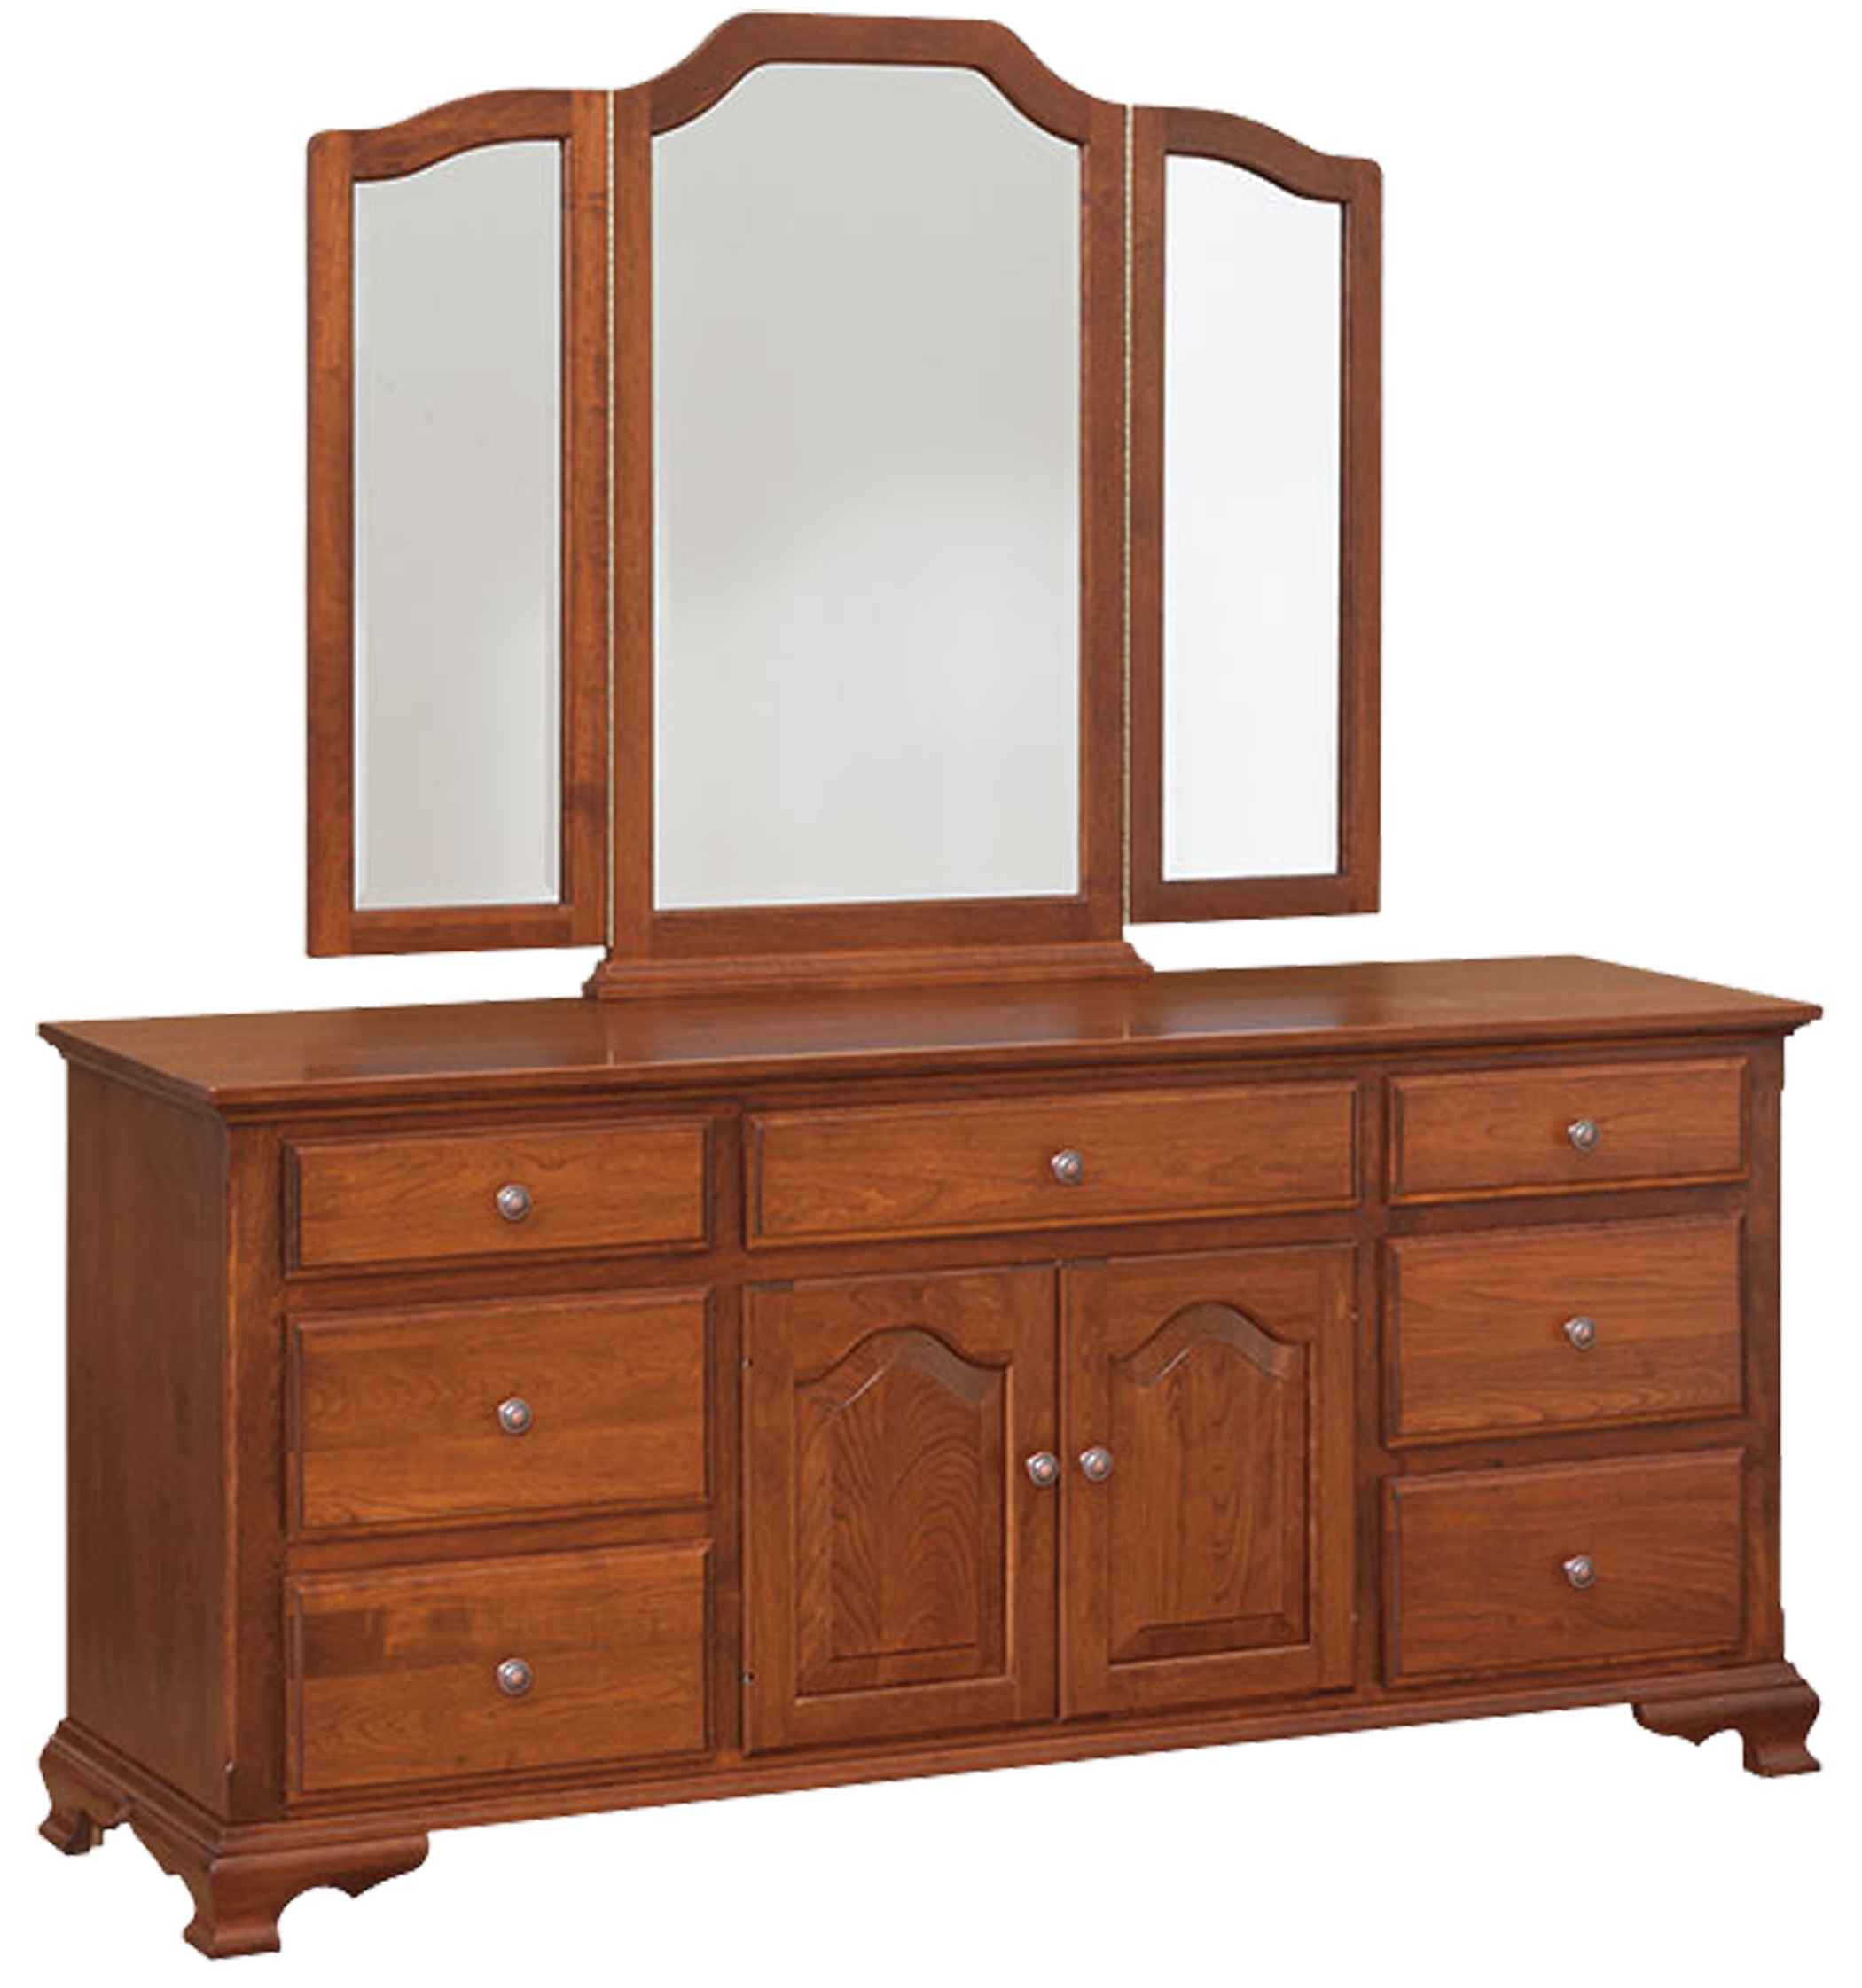 Furniture Png PNG Image